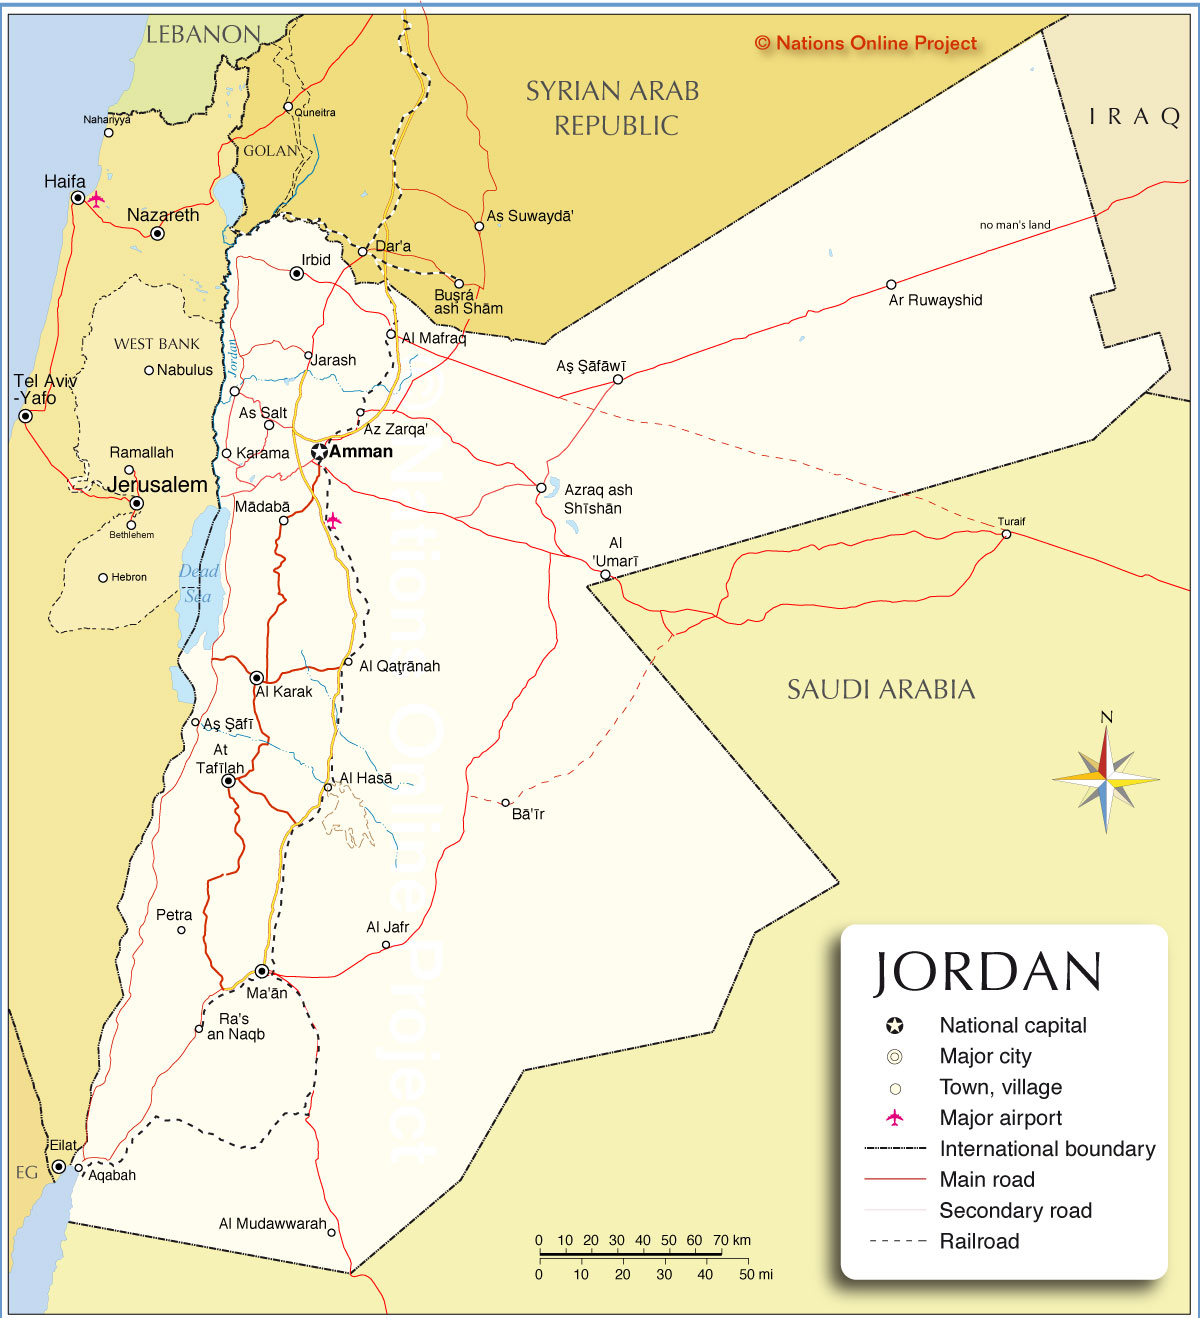 Political Map Of Jordan Nations Online Project - World map jordan river